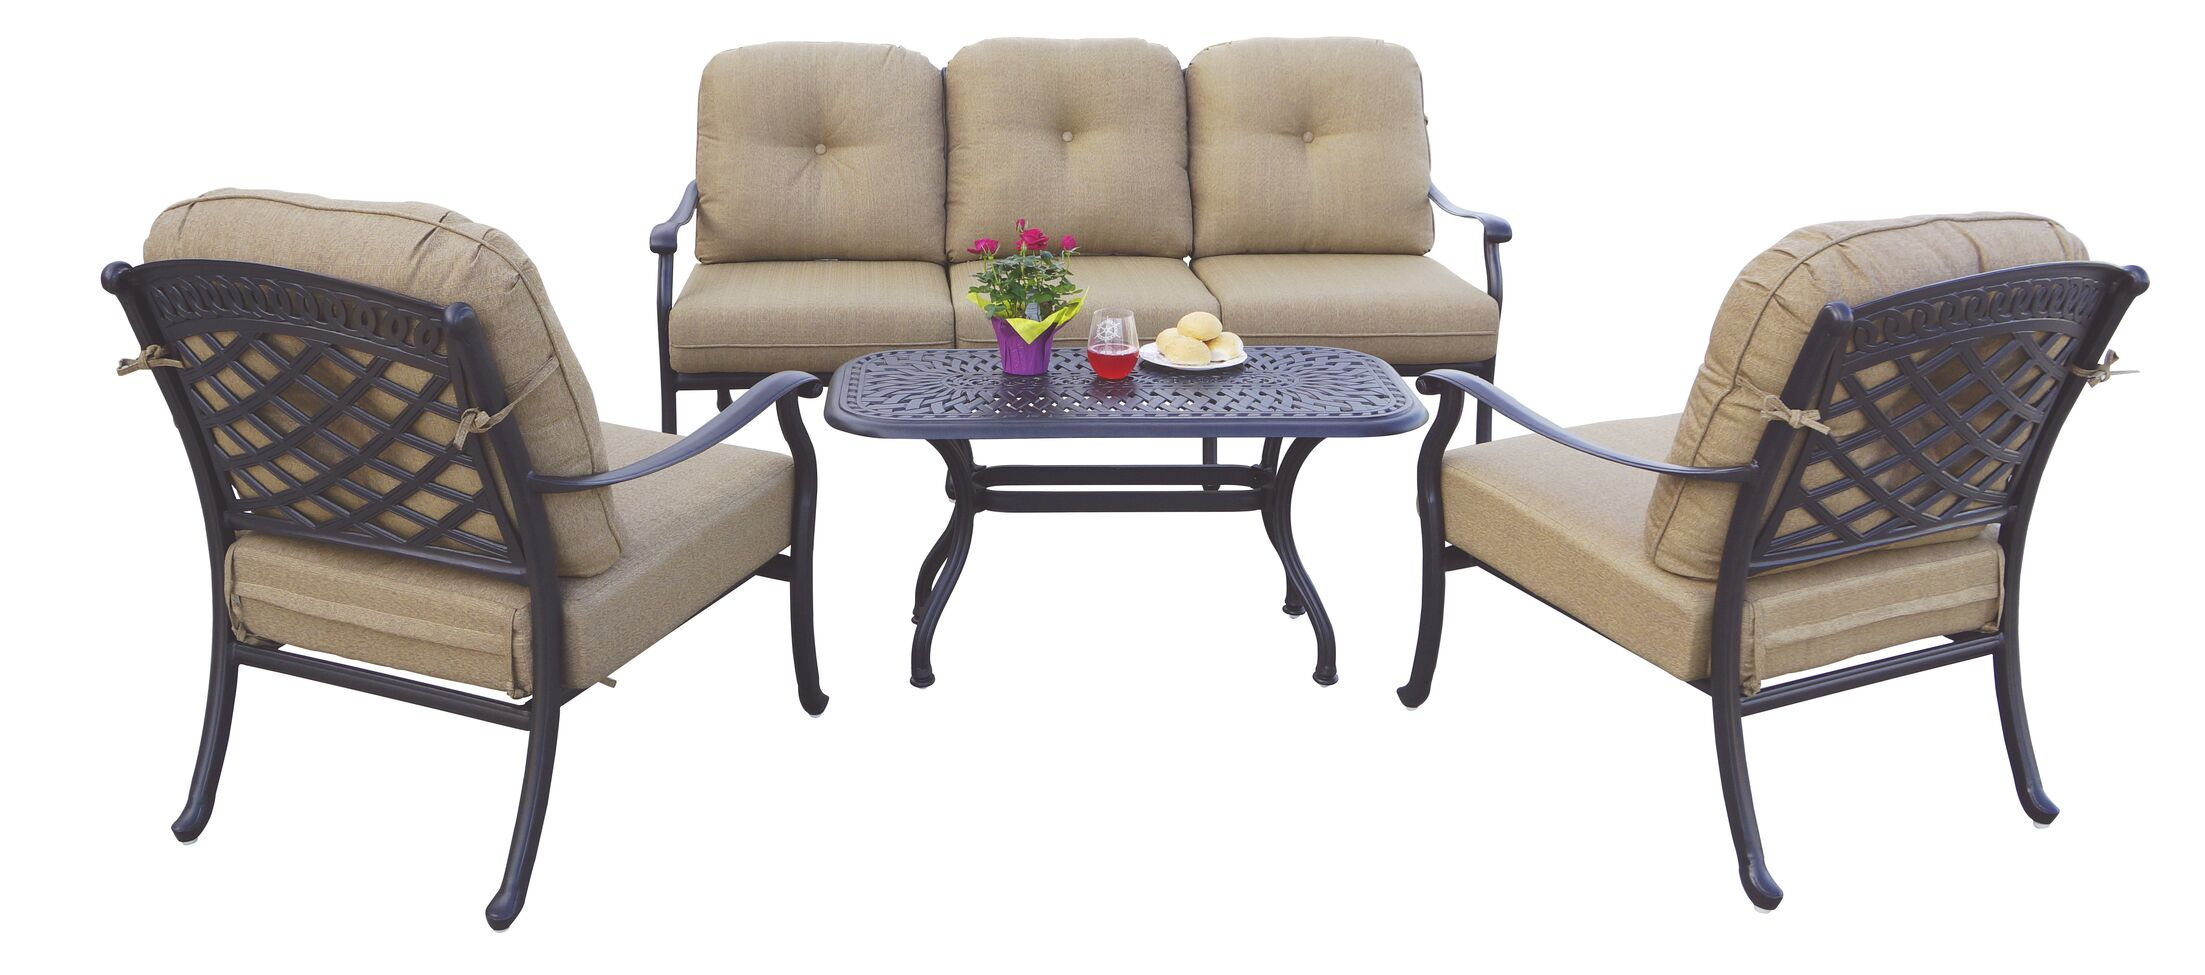 Thompson 4 Piece Sofa Set with Cushions Frame Color: Antique Bronze